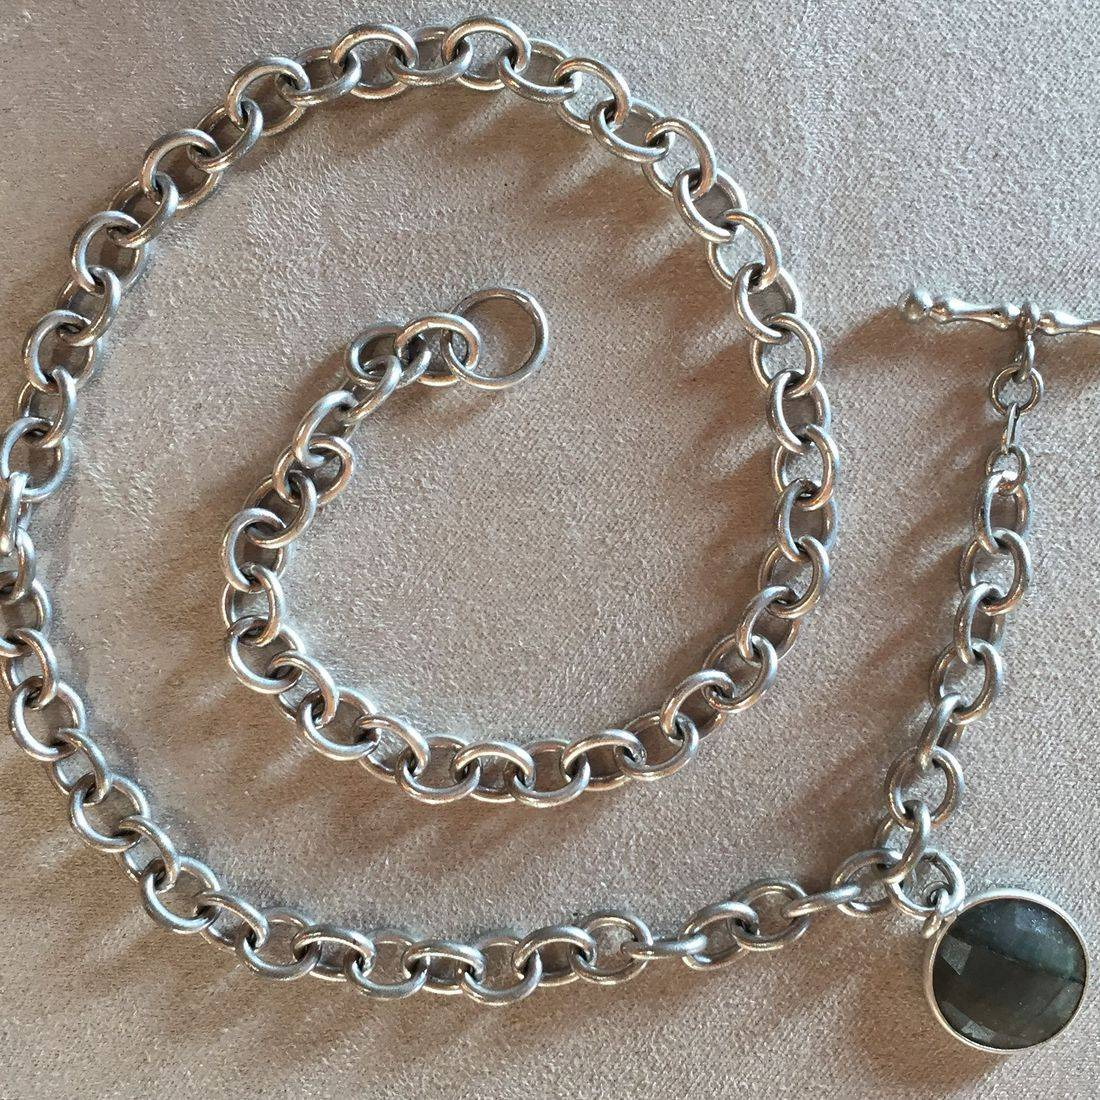 HeavyItalian sterling chain with Silver Labradorite drop worn as a necklace or bracelet... great layering piece